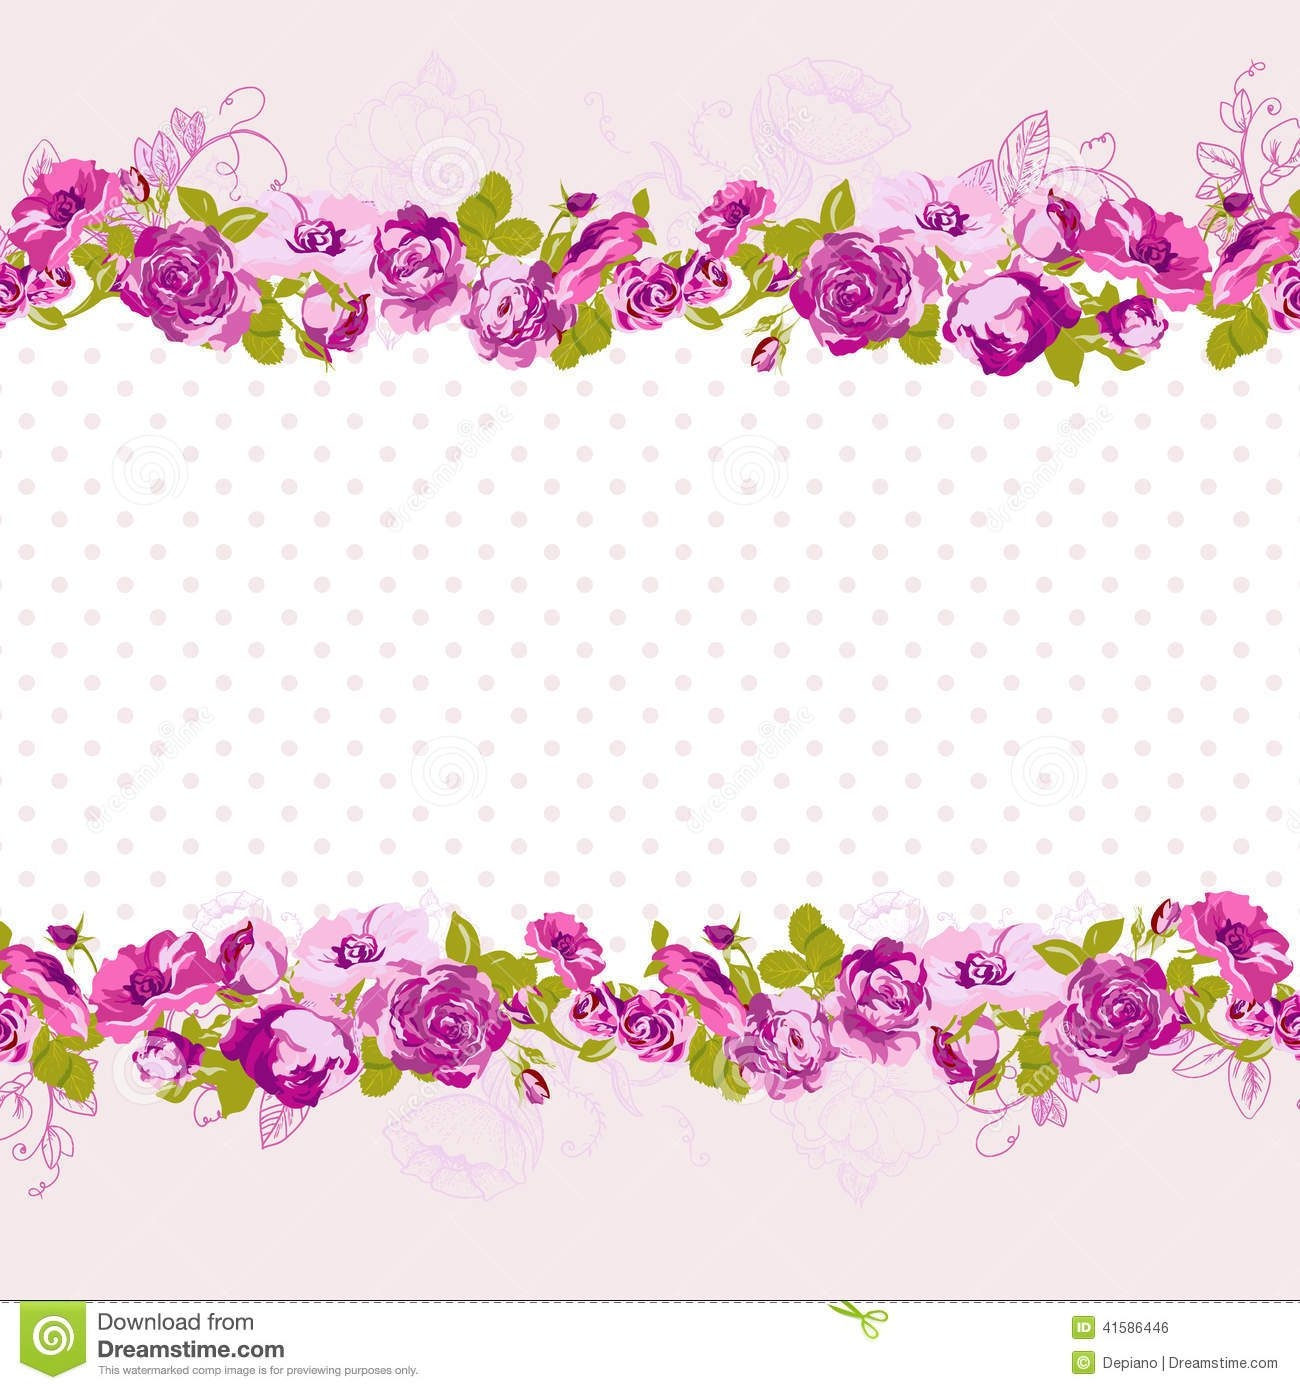 background design for birthday invitation ; seamless-border-of-blossom-roses-stock-vector-image-41586446-for-birthday-card-invitation-background-design